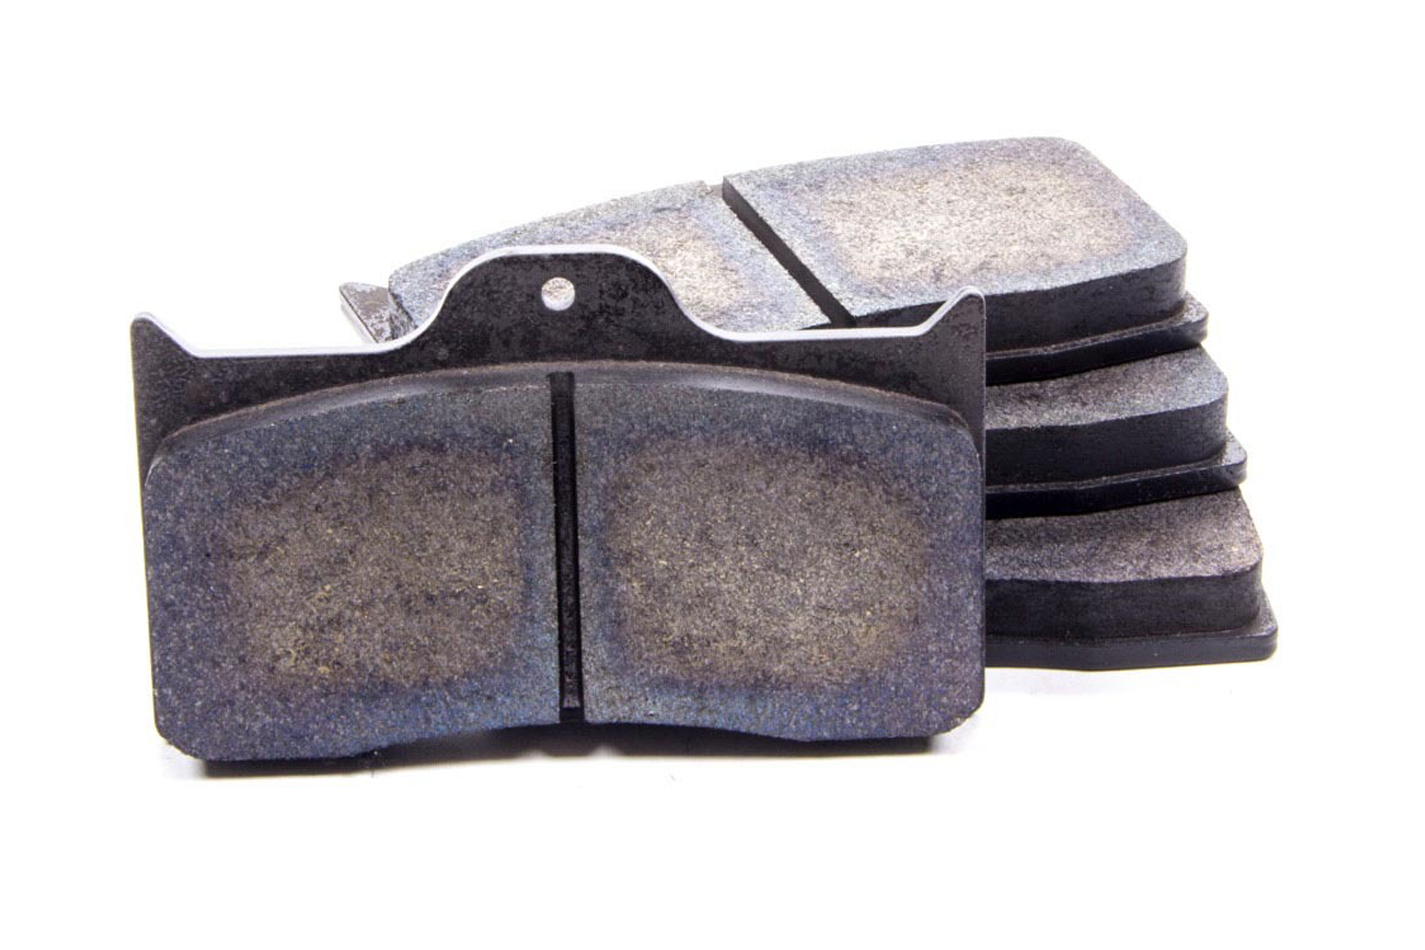 Wilwood 150-14771K Brake Pads, BP-30 Compound, Very High Friction, High Temperature, Dynalite Caliper, Kit